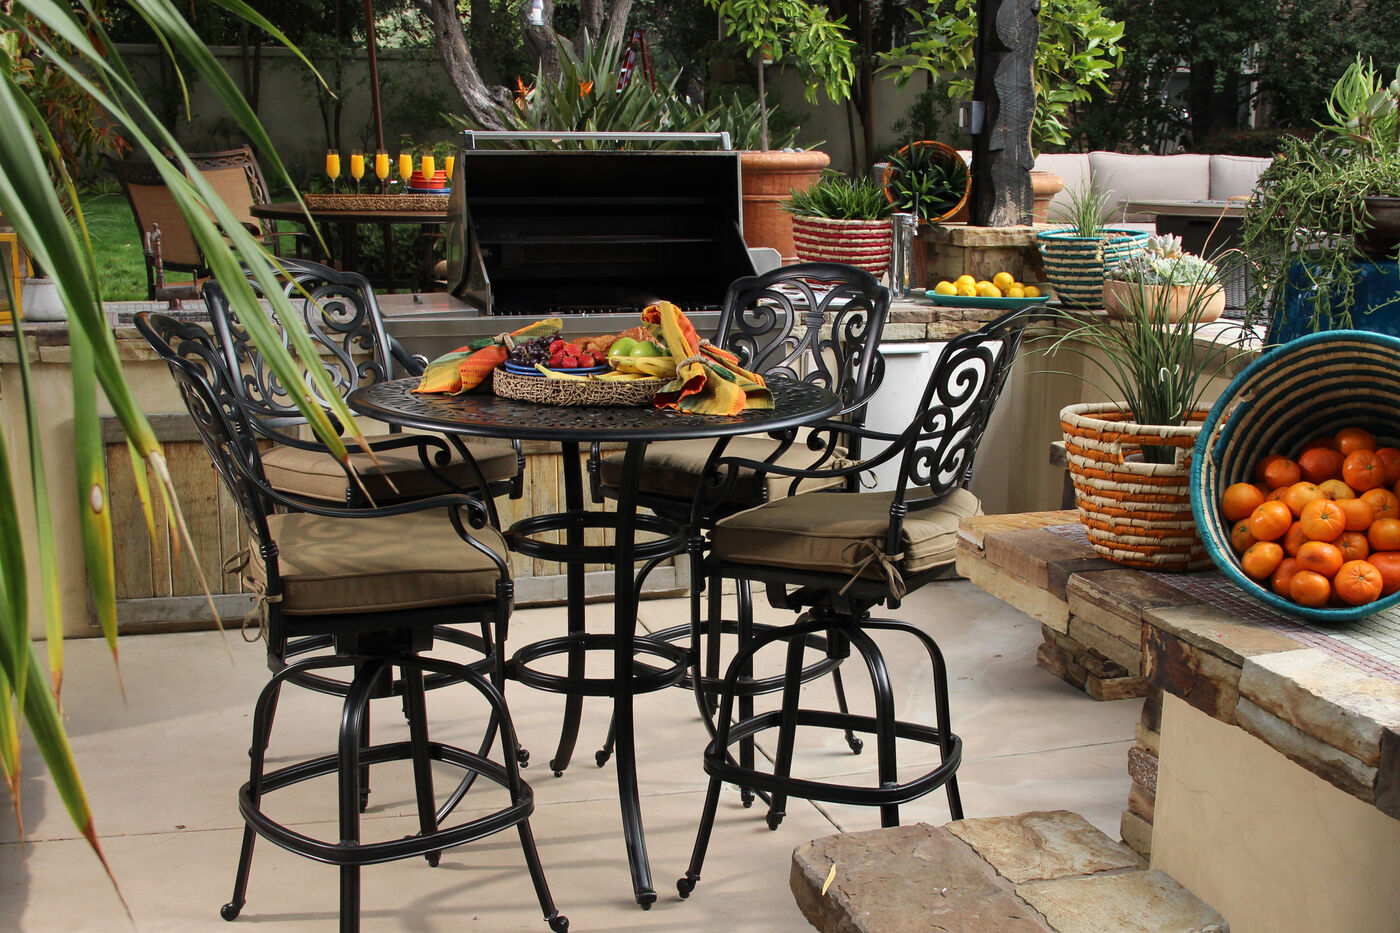 Mathis Brothers Patio Furniture world source st. louis round bar table | mathis brothers furniture